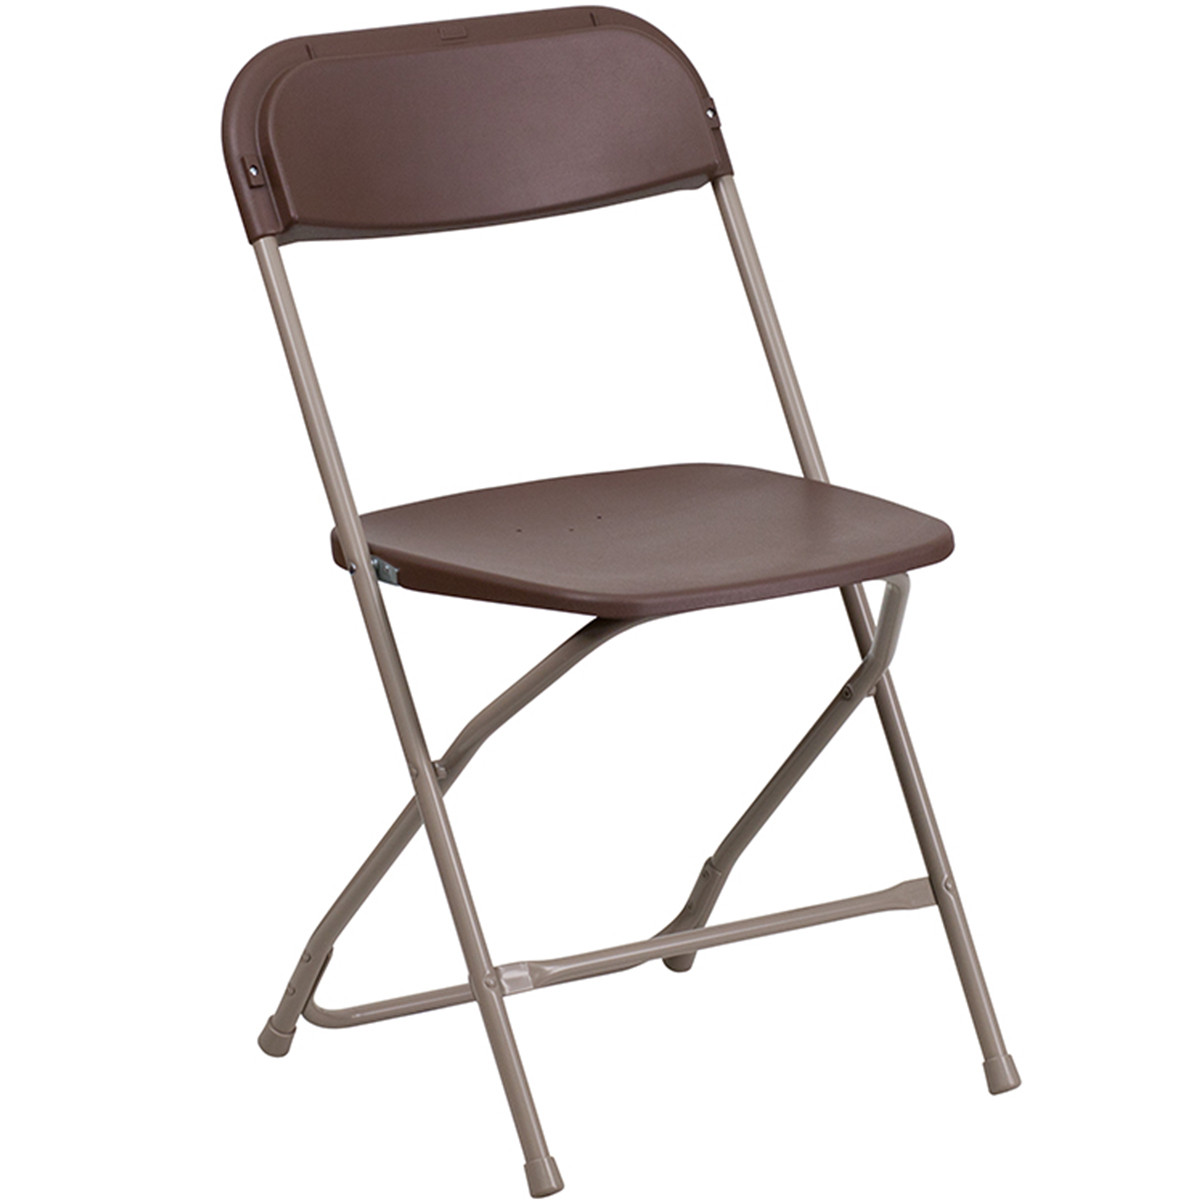 Brown Plastic Folding Chairs Le L 3 Brown Gg